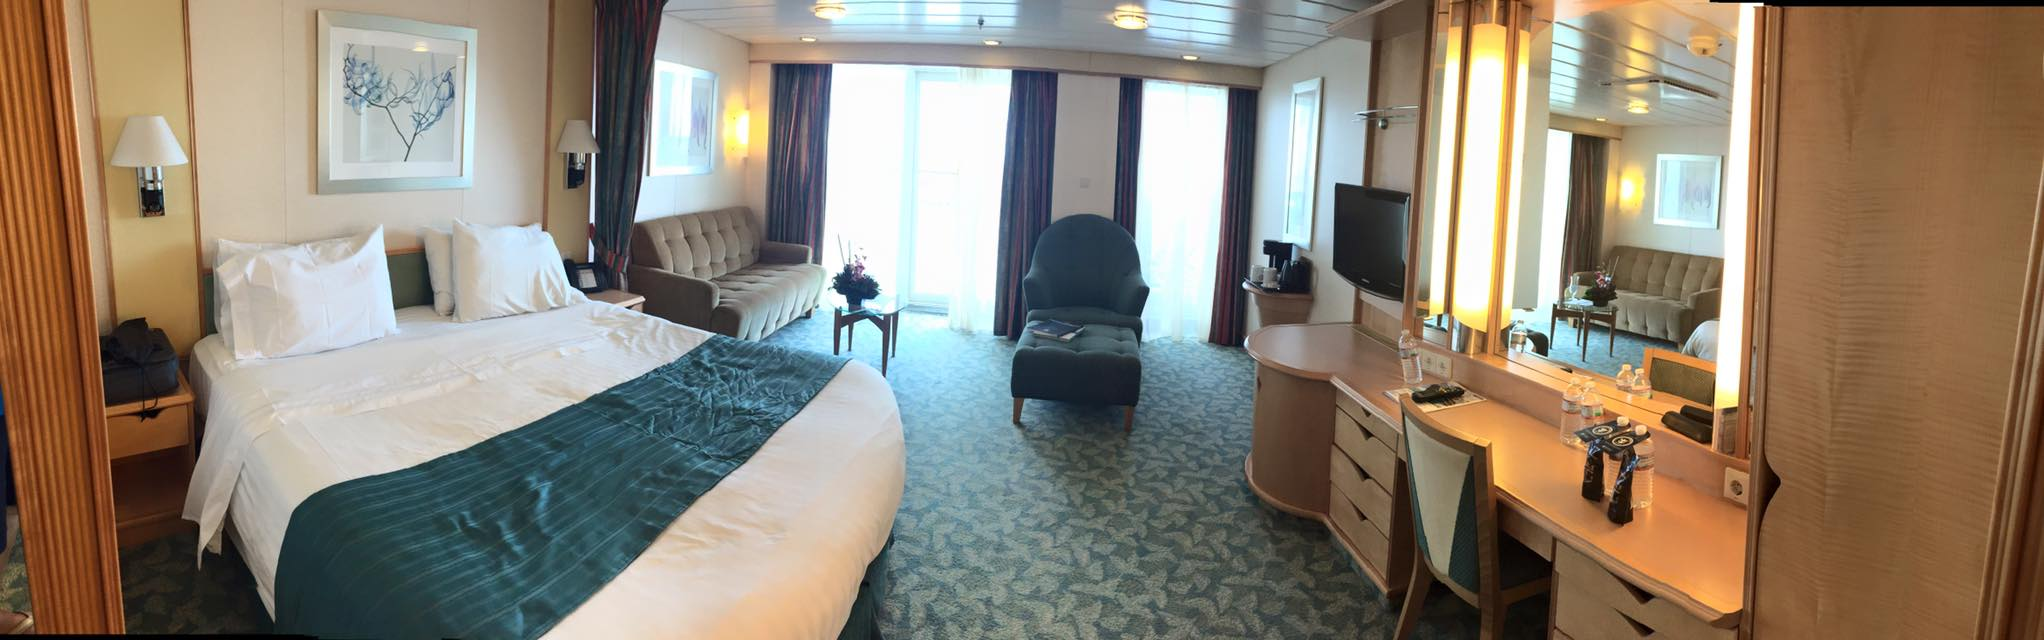 Freedom of the seas renovations 2015 - Junior Suites On Independence Of The Seas Offer Guests 297 Square Feet Of Space And A Balcony That Is 94 Square Feet